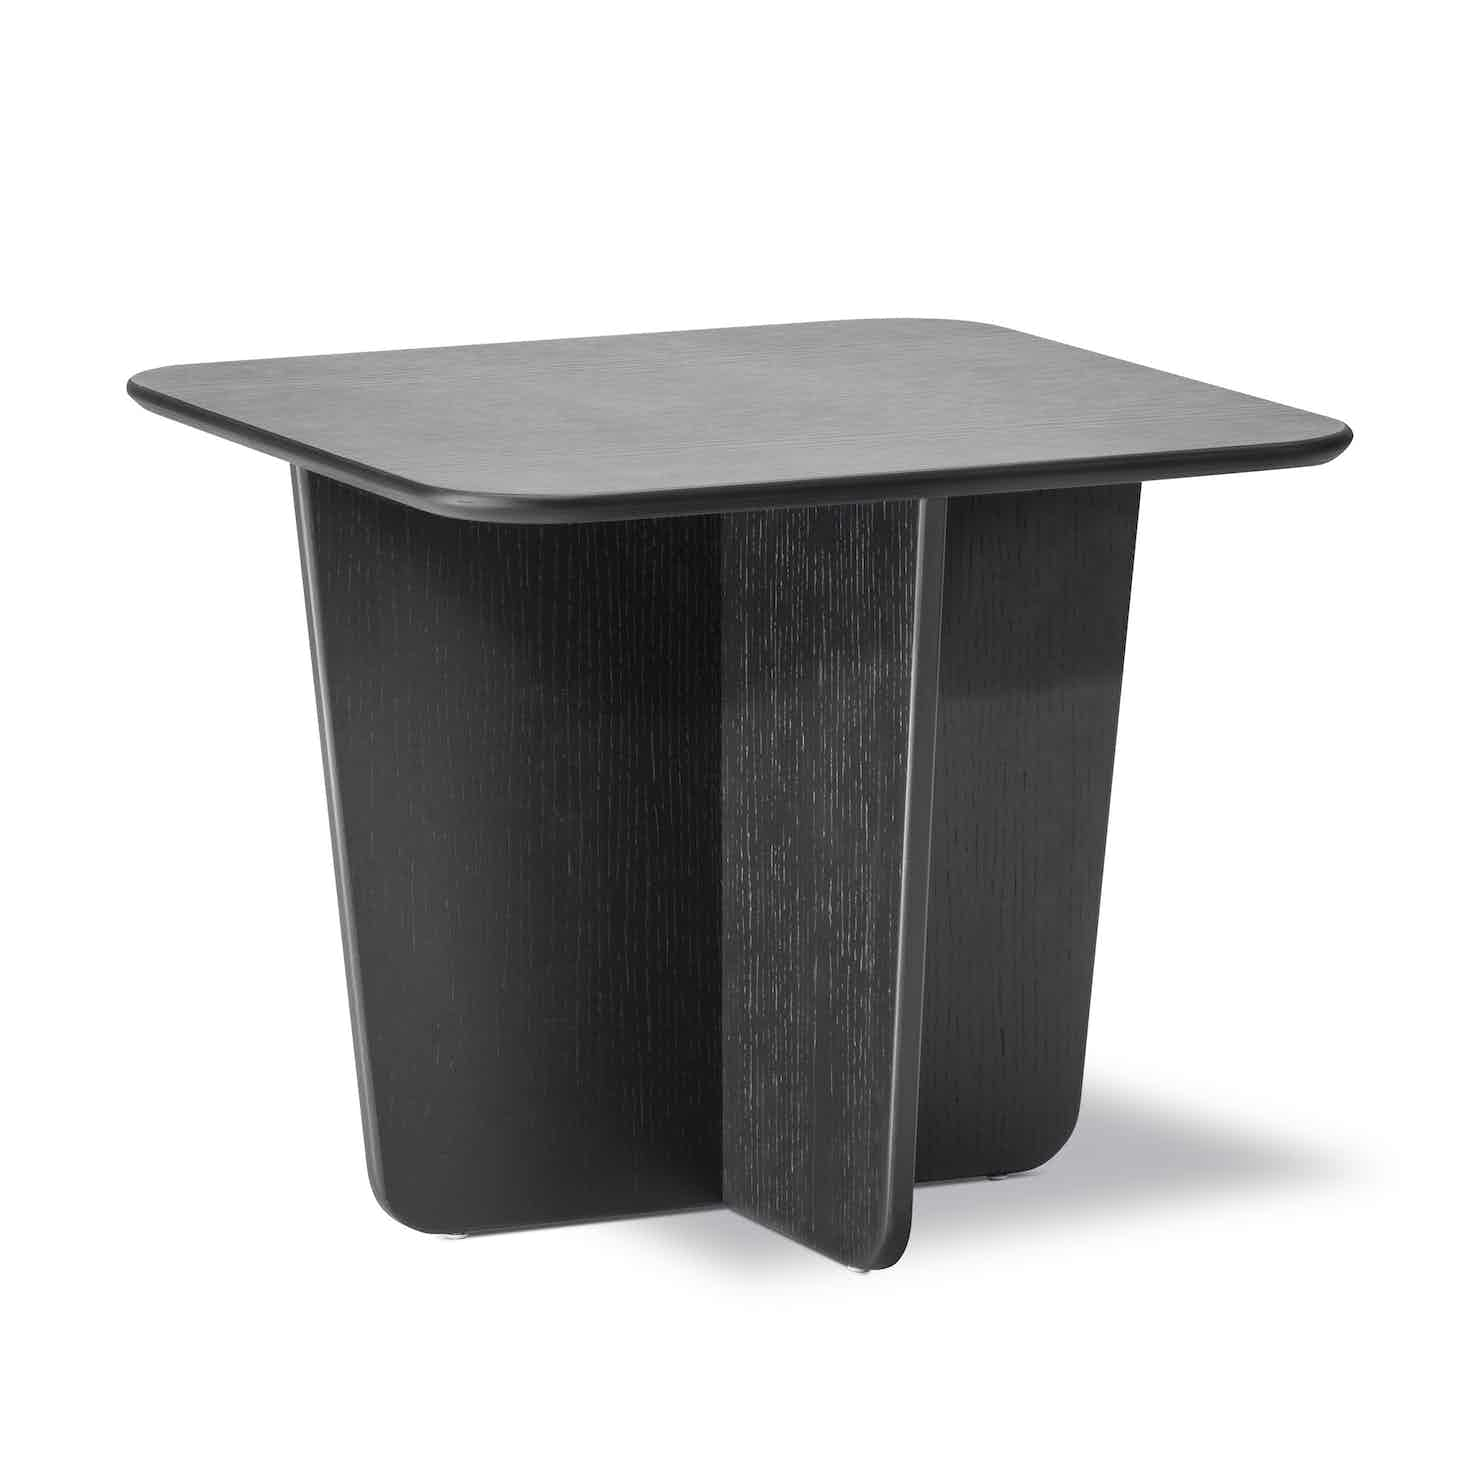 Fredericia Furniture Tableau Side Table Angle Haute Living